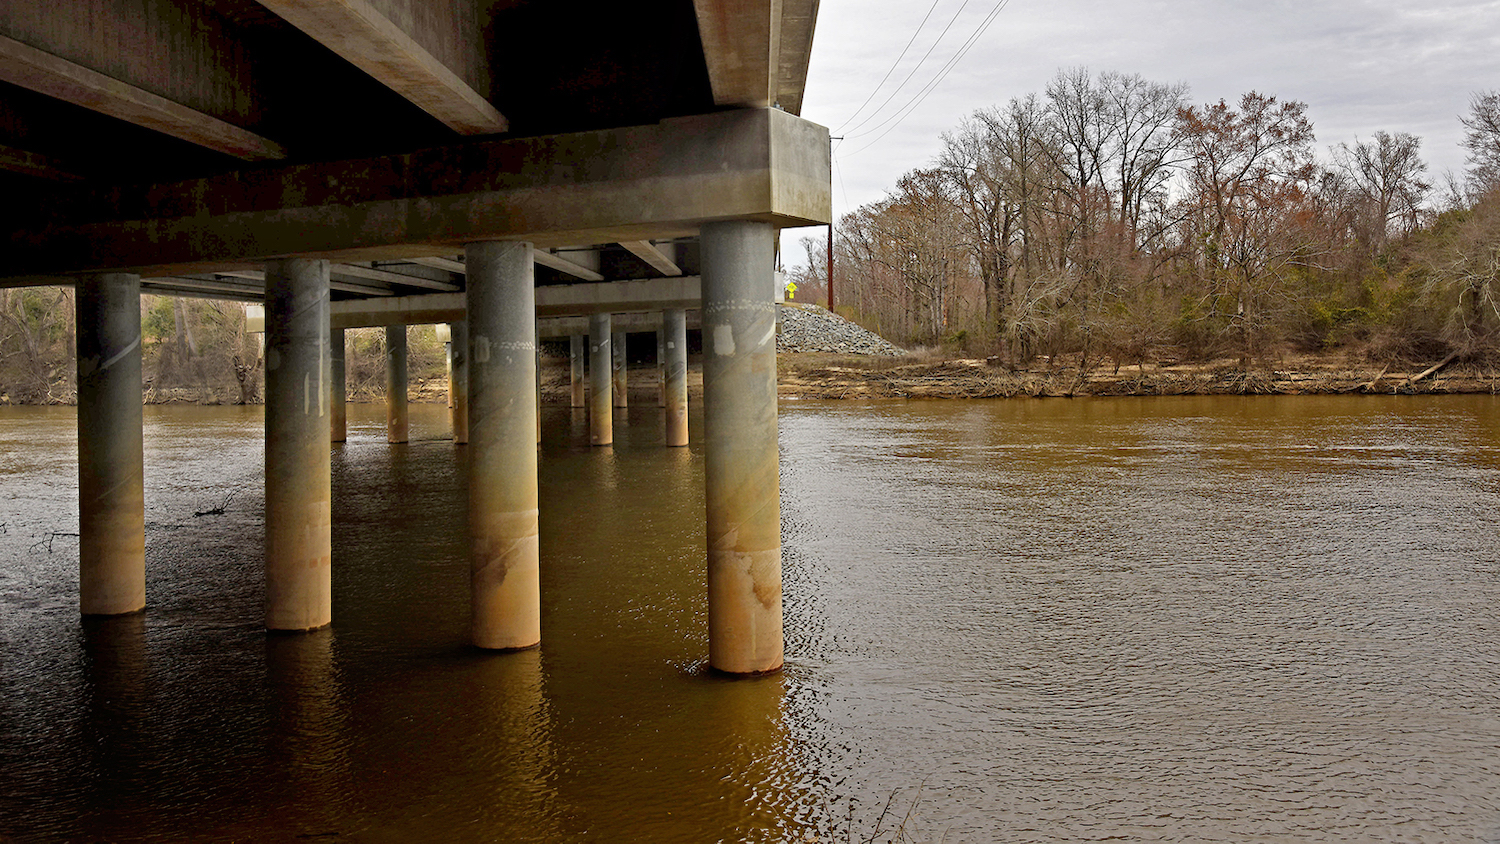 Neuse River - Hydrology and Watershed Management - Forestry and Environmental Resources NC State University